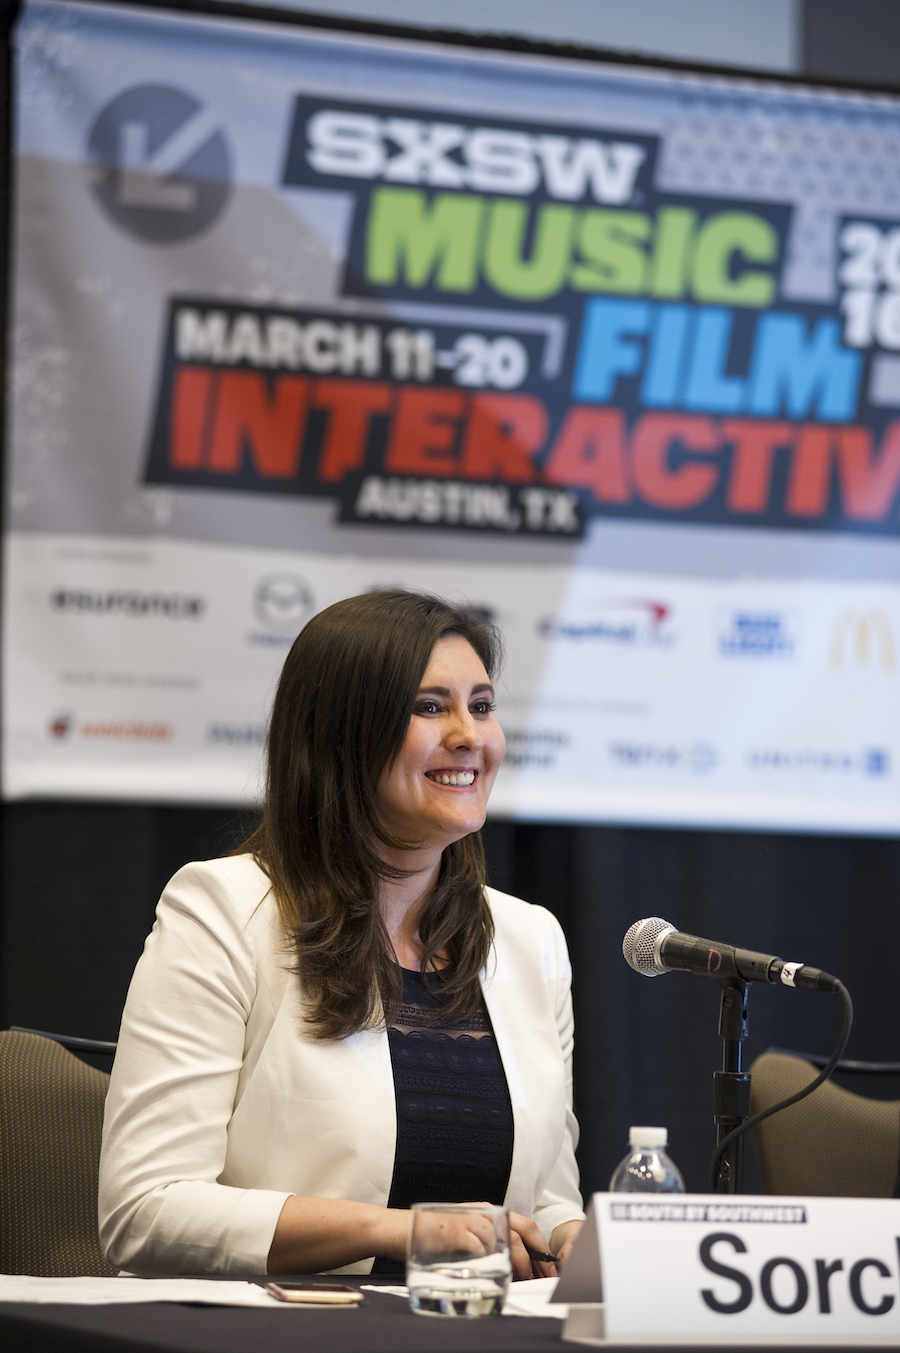 Speaking on encryption debate at SXSW Interactive in Austin, Texas. (Photo by Ann Hermes, the Christian Science Monitor)